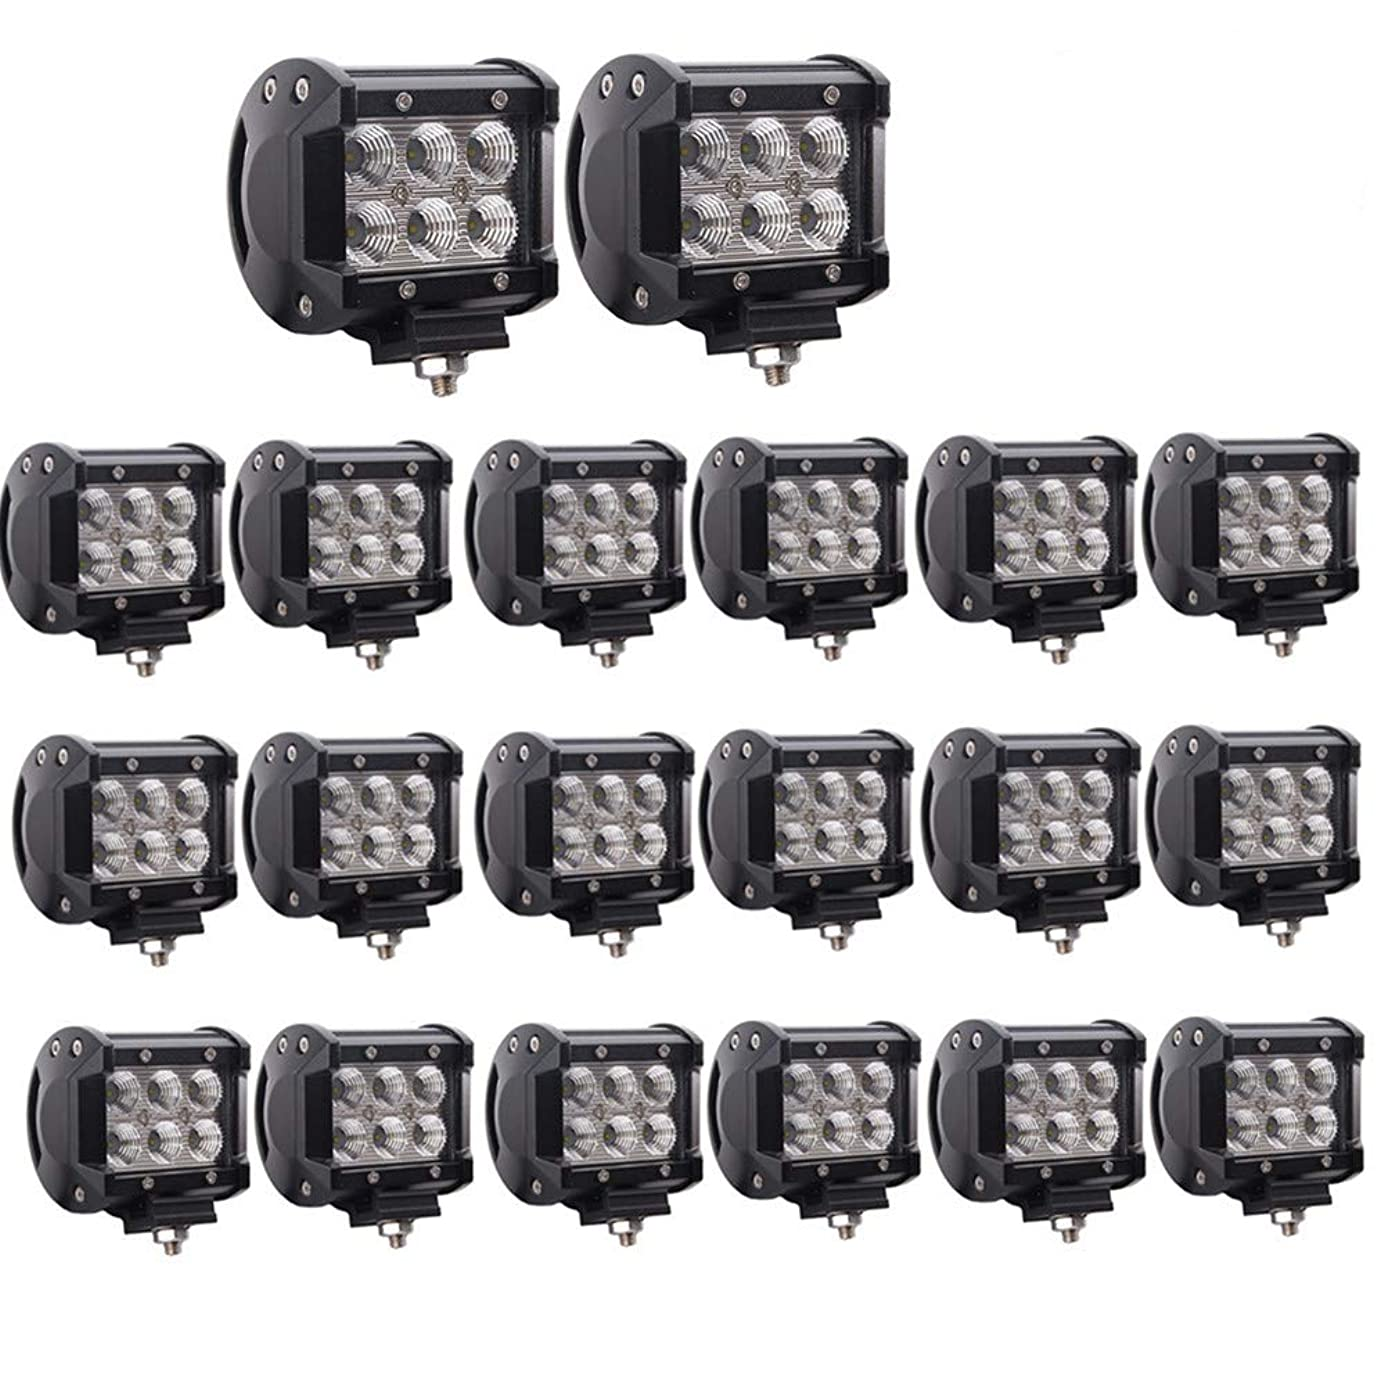 Lumitek 20PCS 4inch 18W CREE LED Light Bar Led Flood Light Pods IP67 Waterproof 6000K Led Fog Lights Driving Lights Off-road Lights for Pickup Jeep Trucks SUV UTV Tanks Van Camper ATV 4WD ……… dcnhvc2968